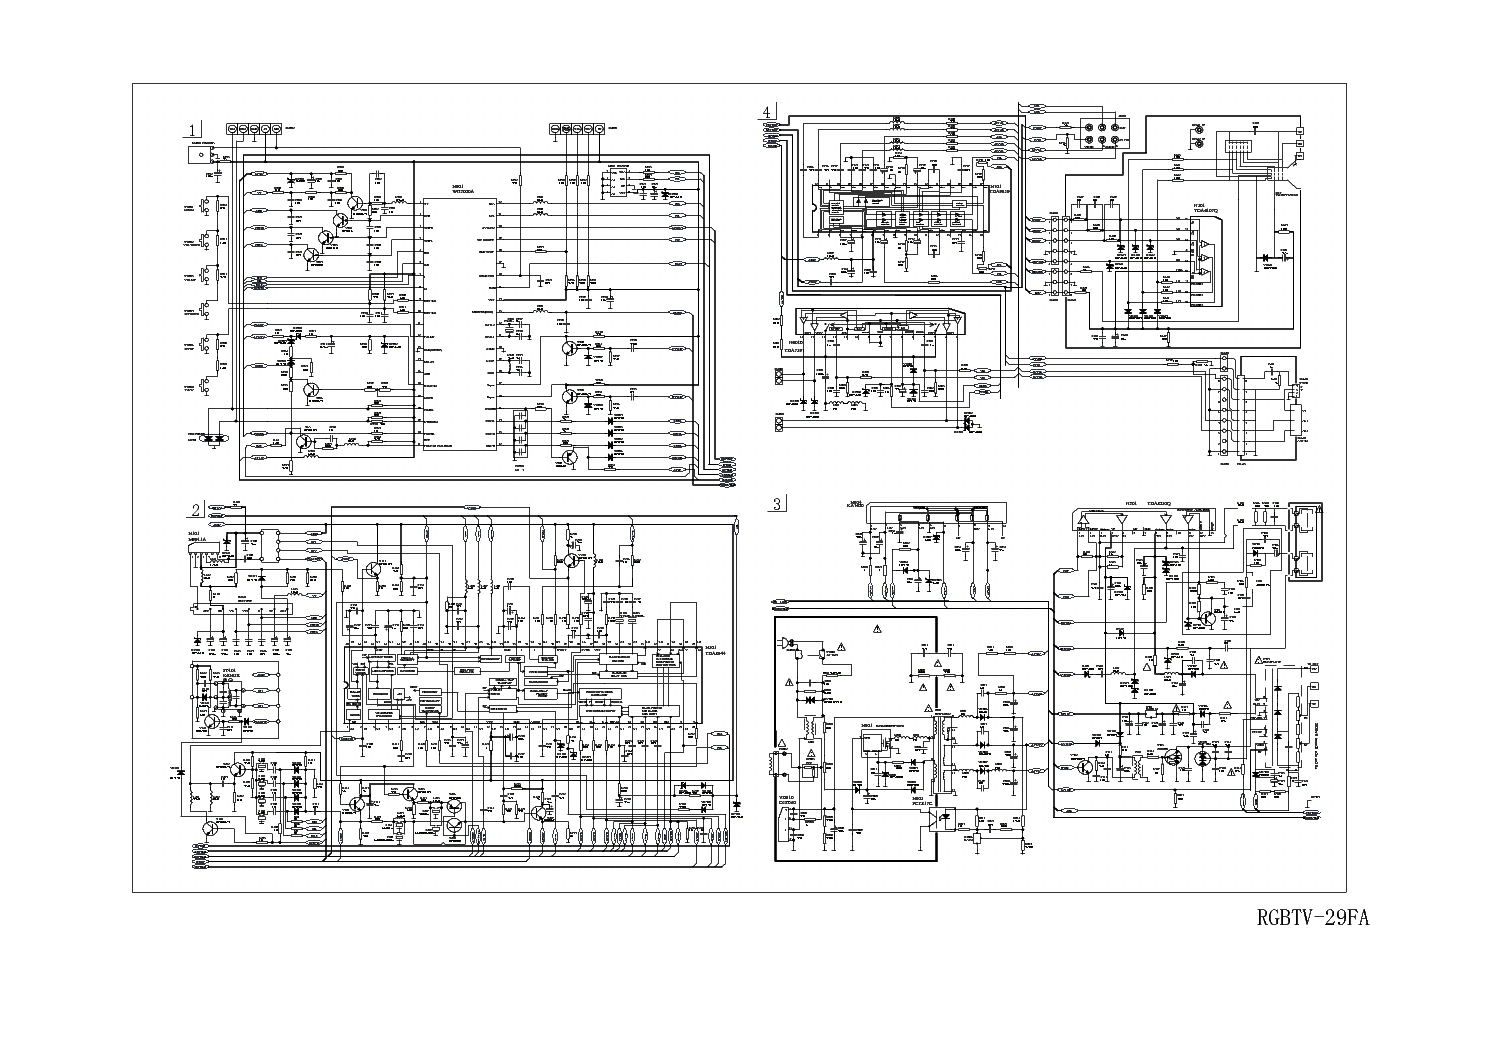 haier tv  fa circuit diagram service manual free download    haier tv  fa circuit diagram service manual